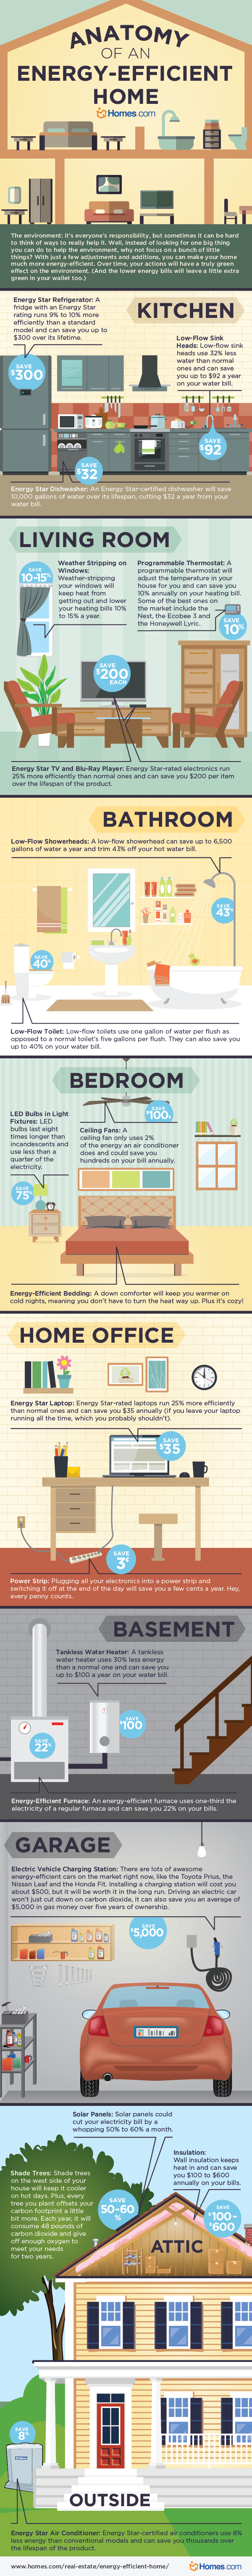 Thanks to homes com for using our content to make this great infographic on